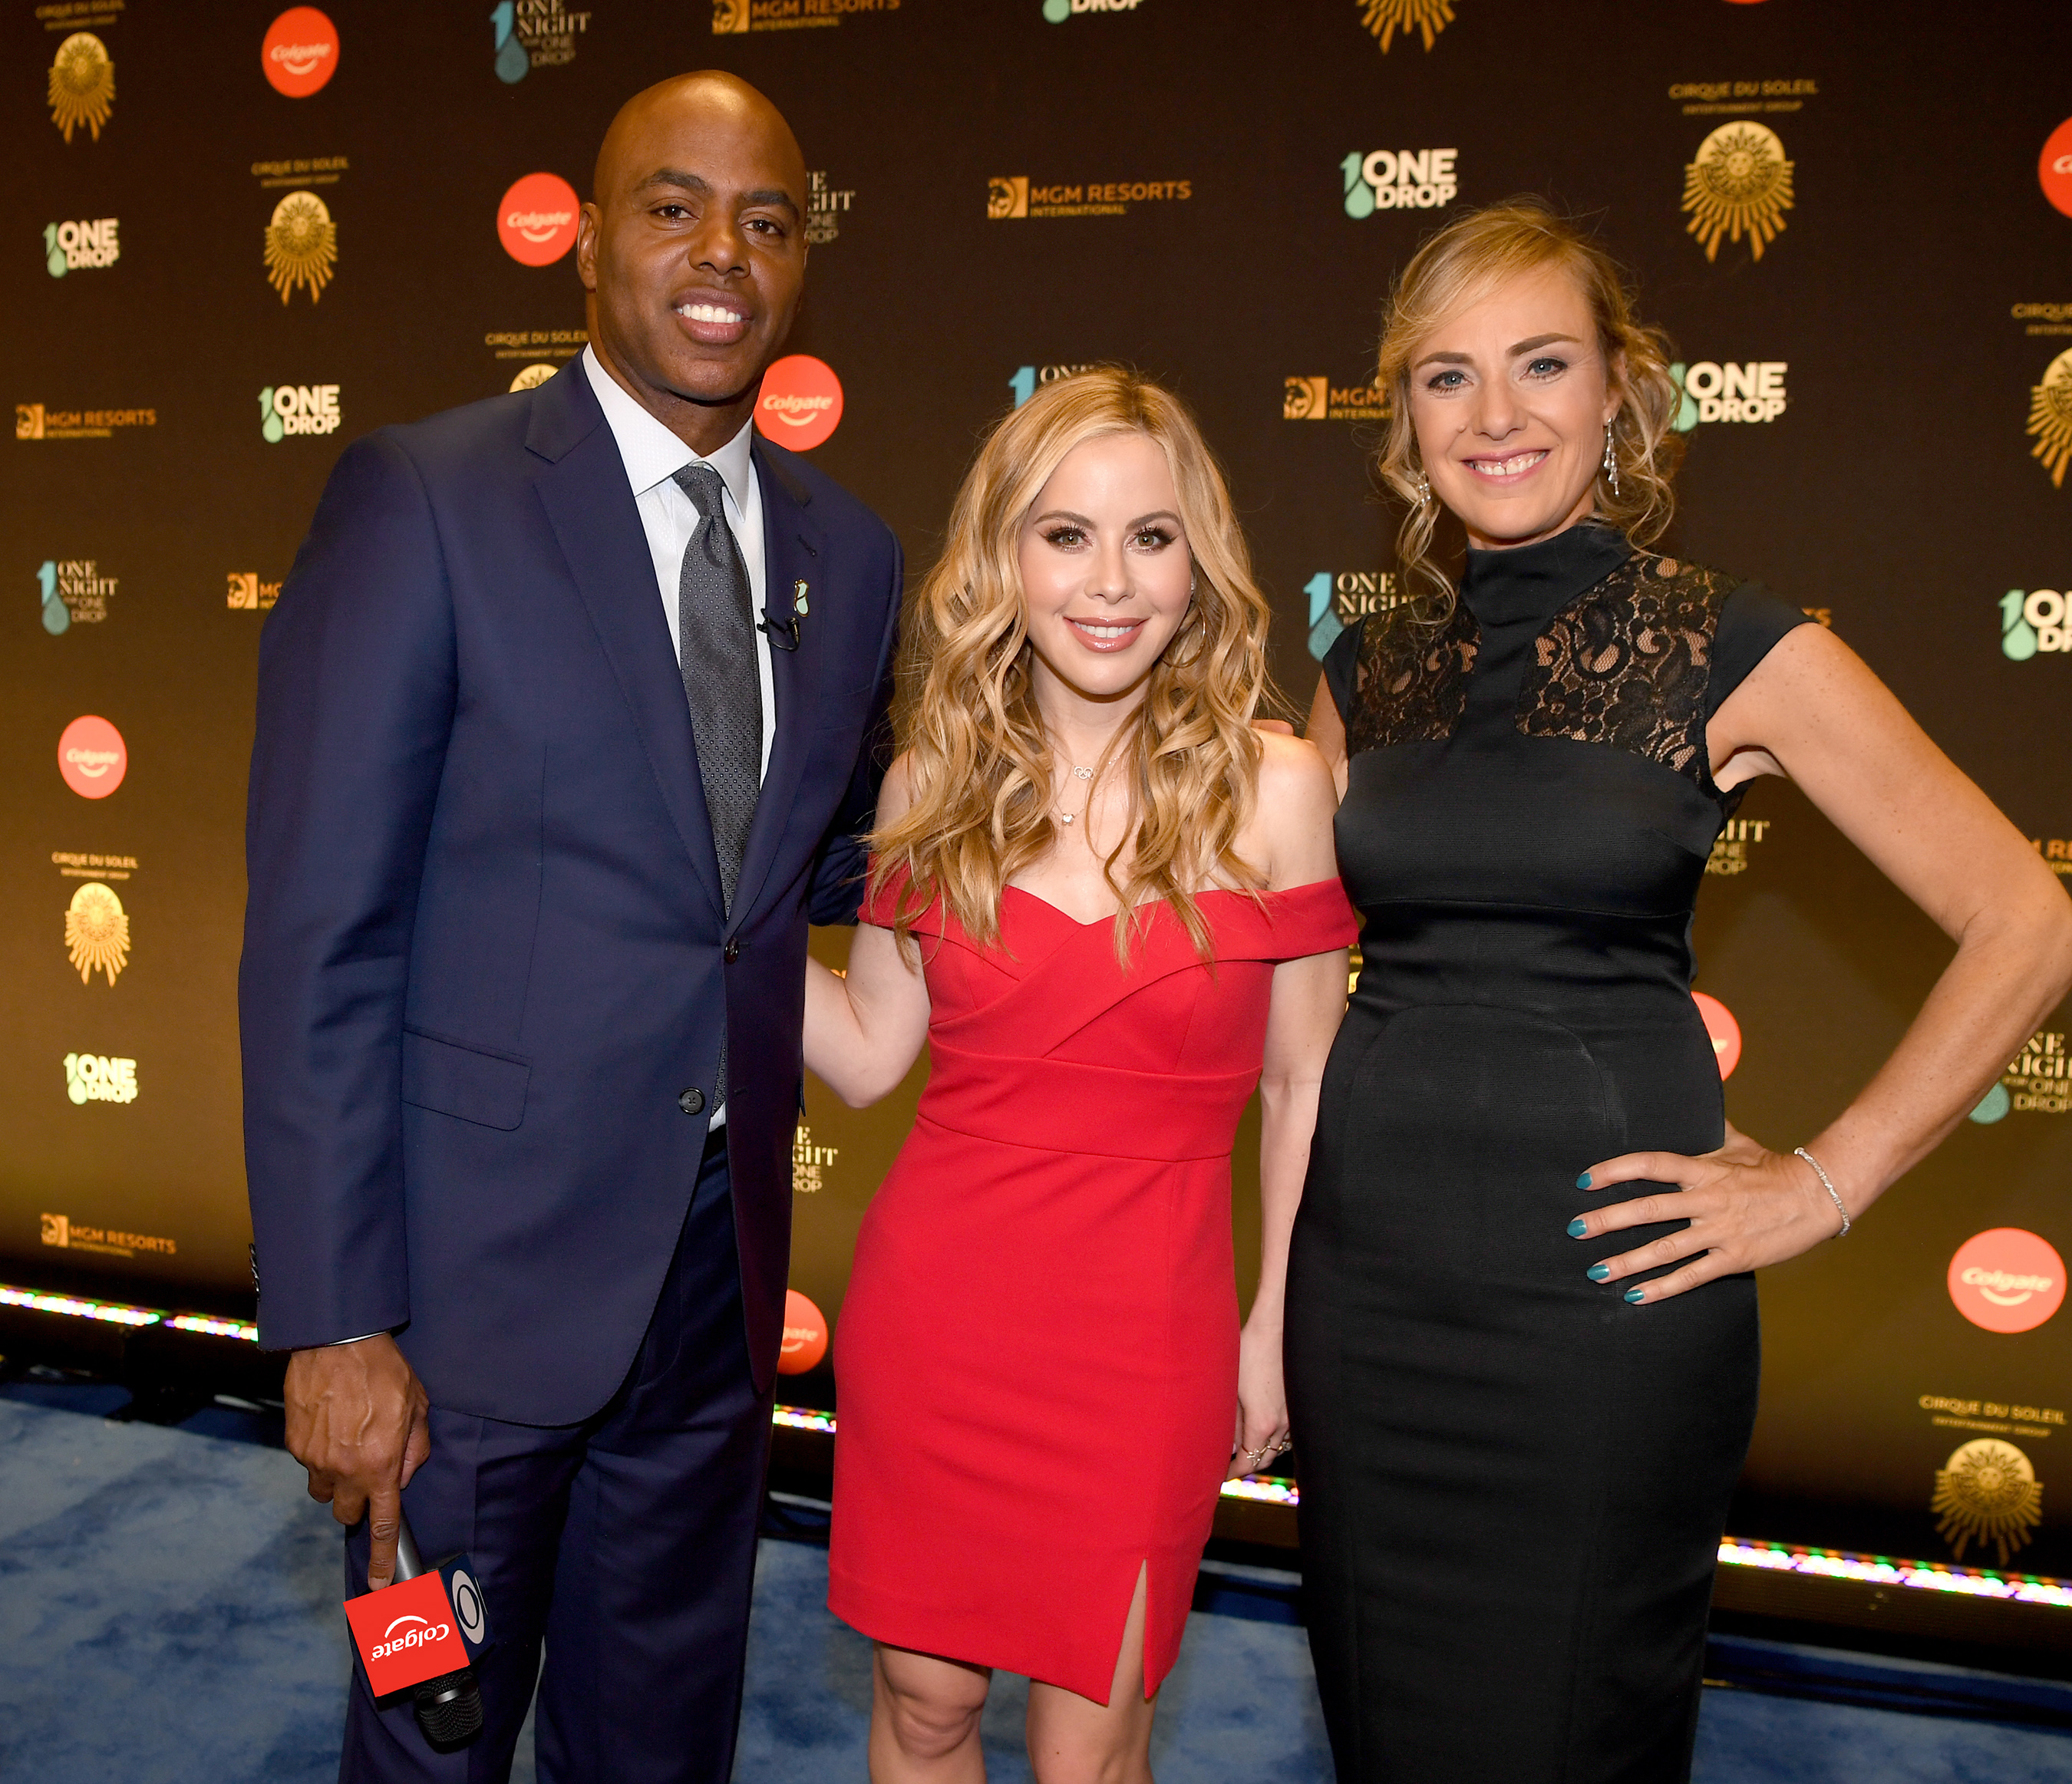 Figure Skating Champion, Tara Lipinski and Entertainment Tonight's Kevin Frazier host Cirque Du Soleil's exclusive One Night for One Drop performance, imagined by Cirque du Soleil in Las Vegas. Pictured alongside with Ultra-runner and Colgate partner Mina Guli.